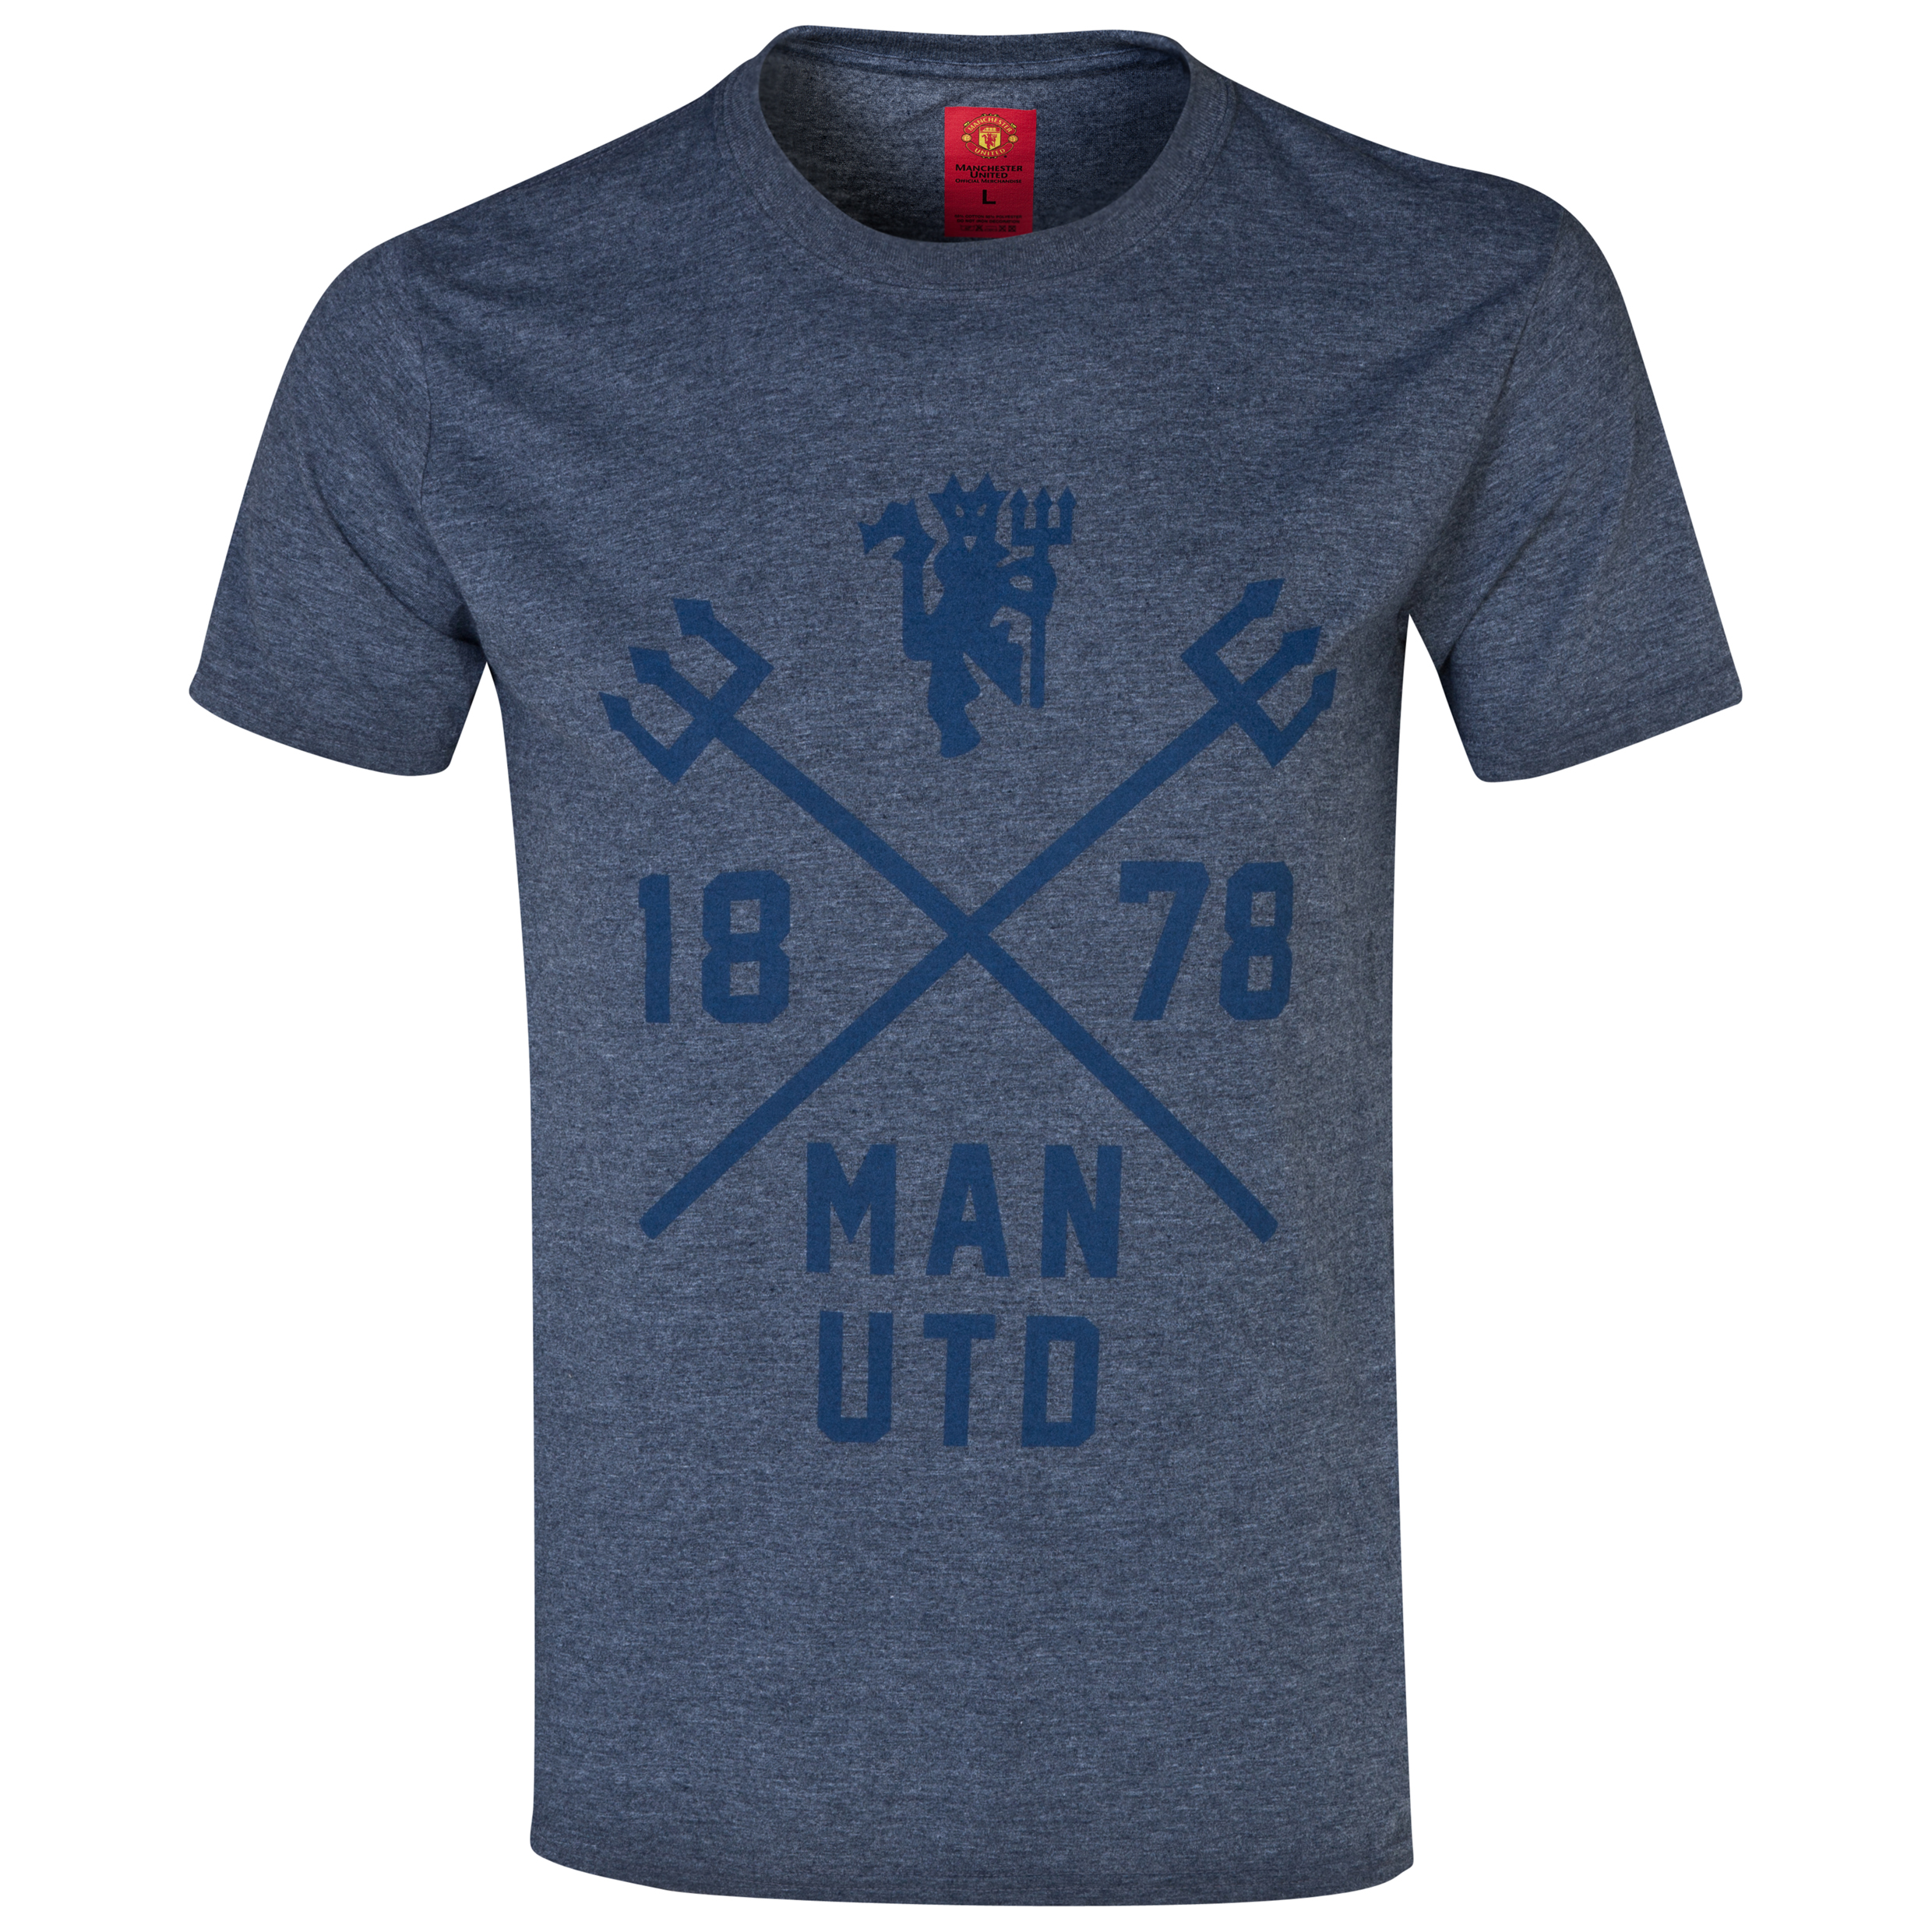 Manchester United Trident T-Shirt -  Mens Navy